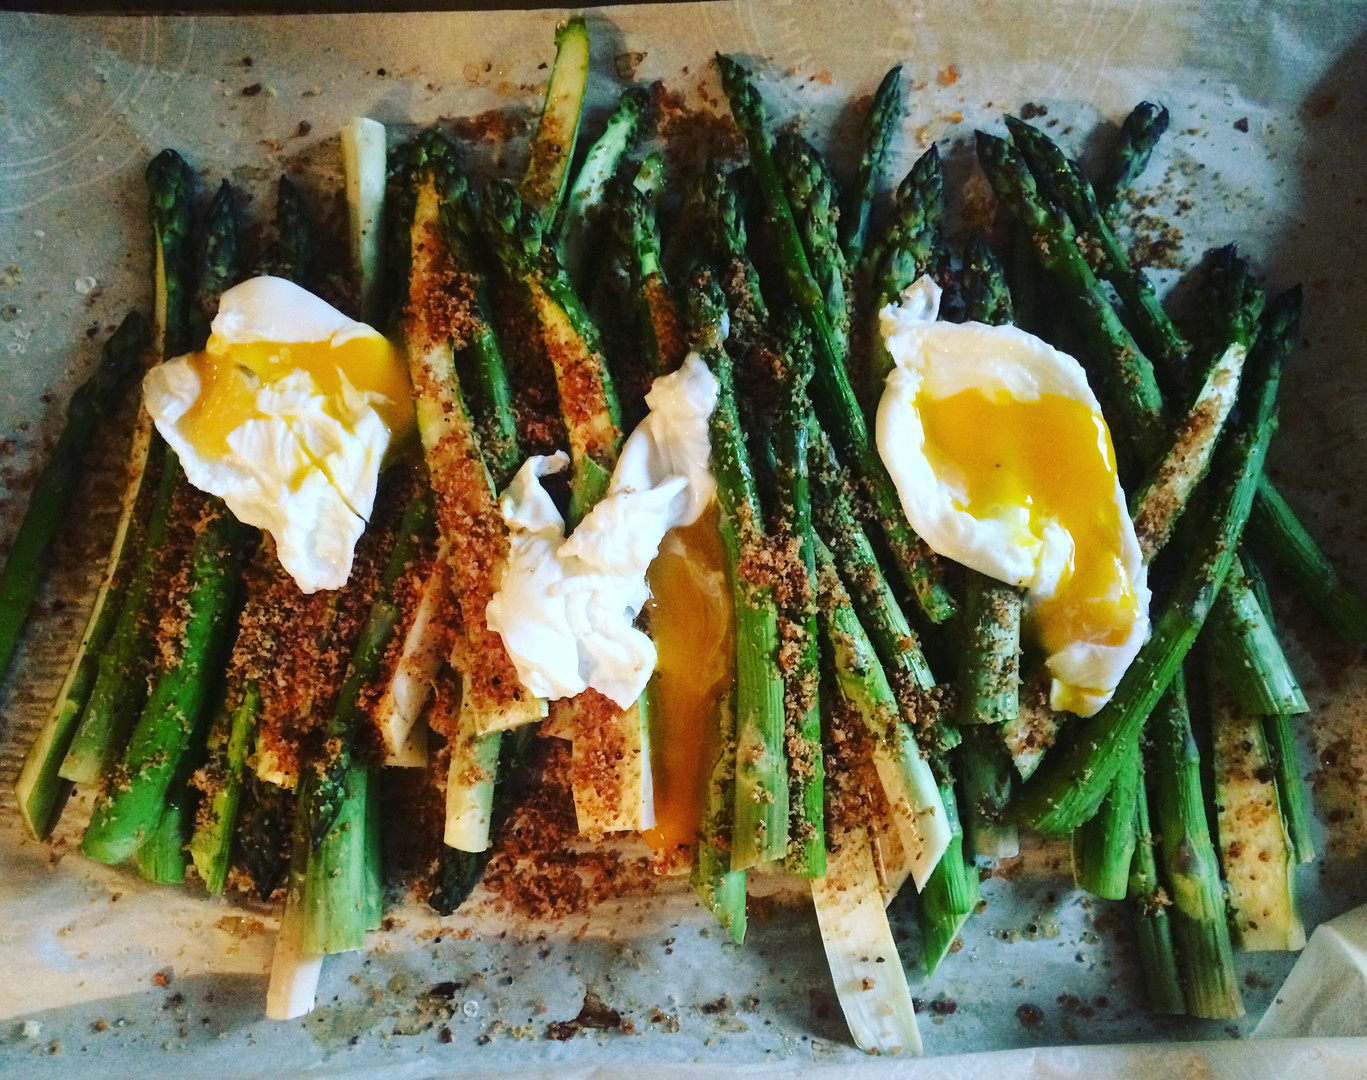 Fat Asparagus with Poached Eggs and Lemony Breadcrumbs